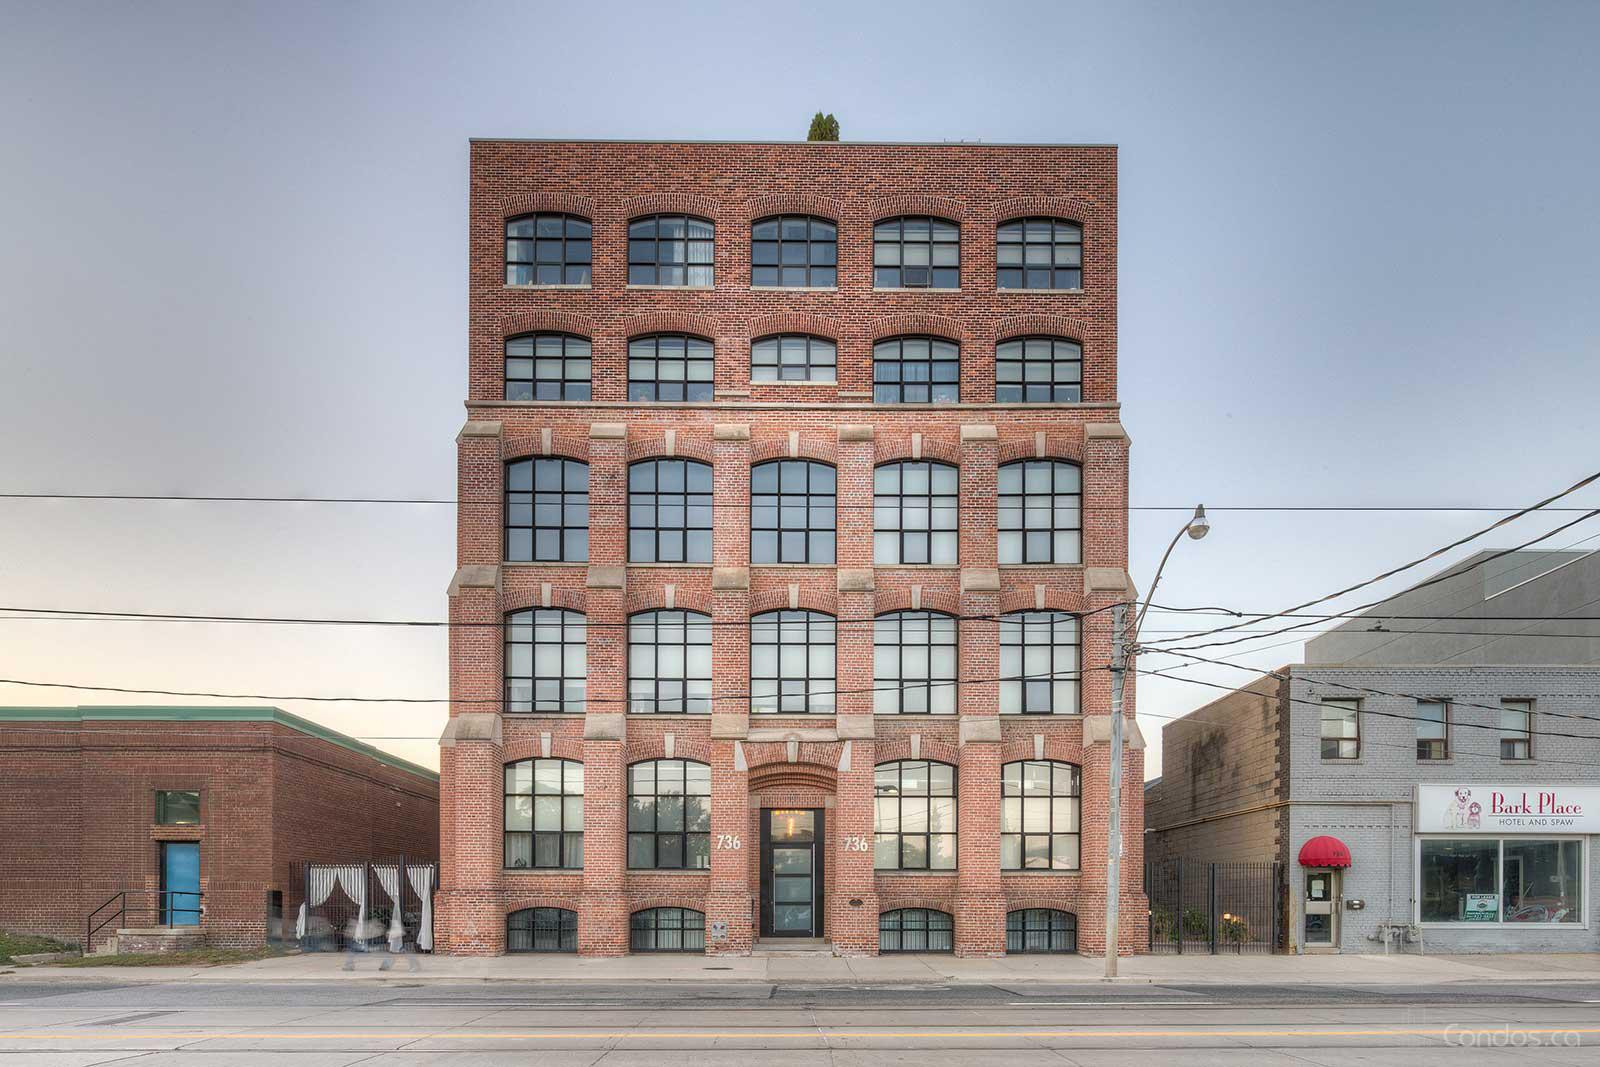 Tannery Lofts at 736 Dundas St E, Toronto 0